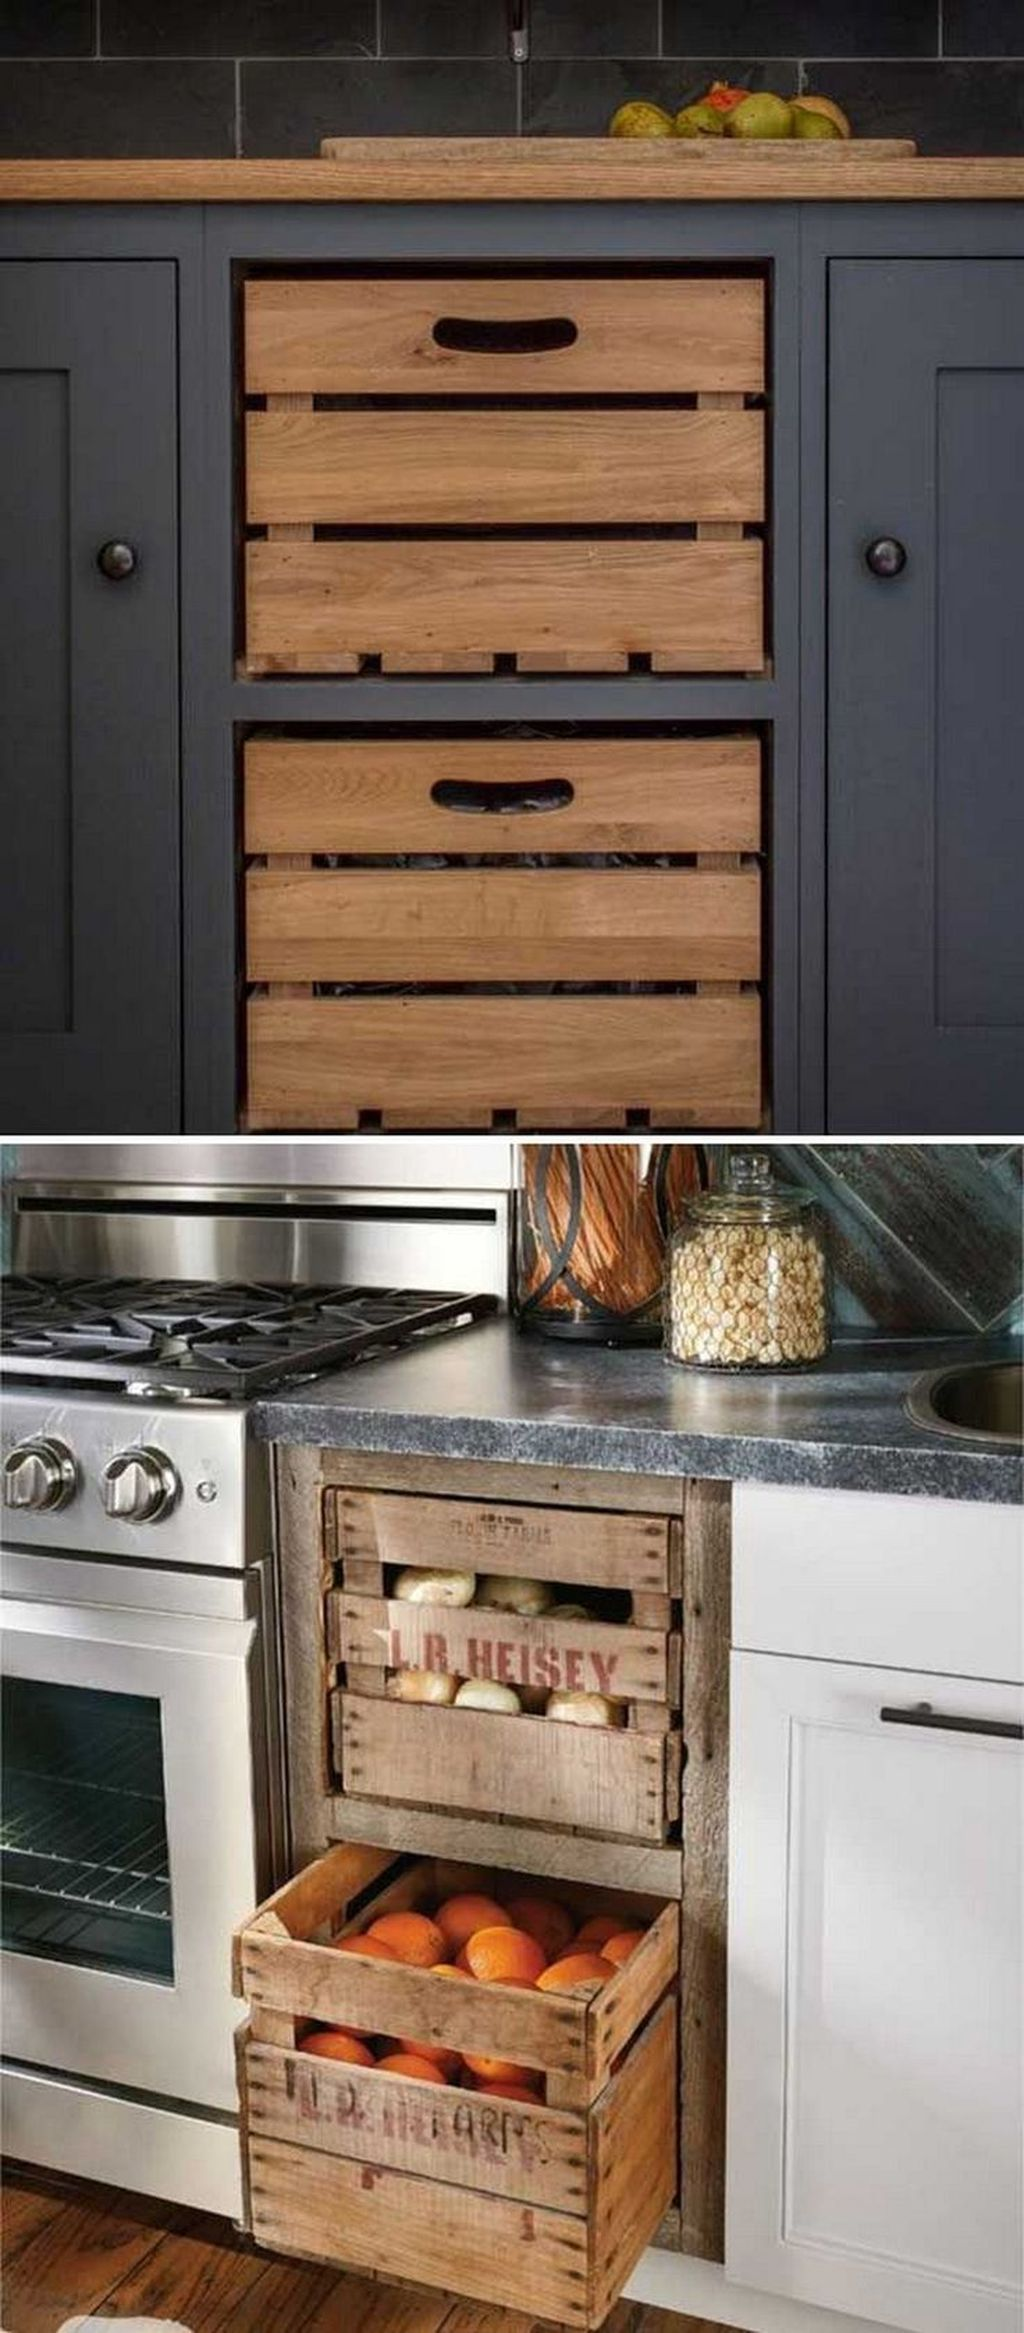 46 inexpensive farmhouse kitchen design ideas on a budget in 2020 rustic kitchen modern on farmhouse kitchen on a budget id=84744